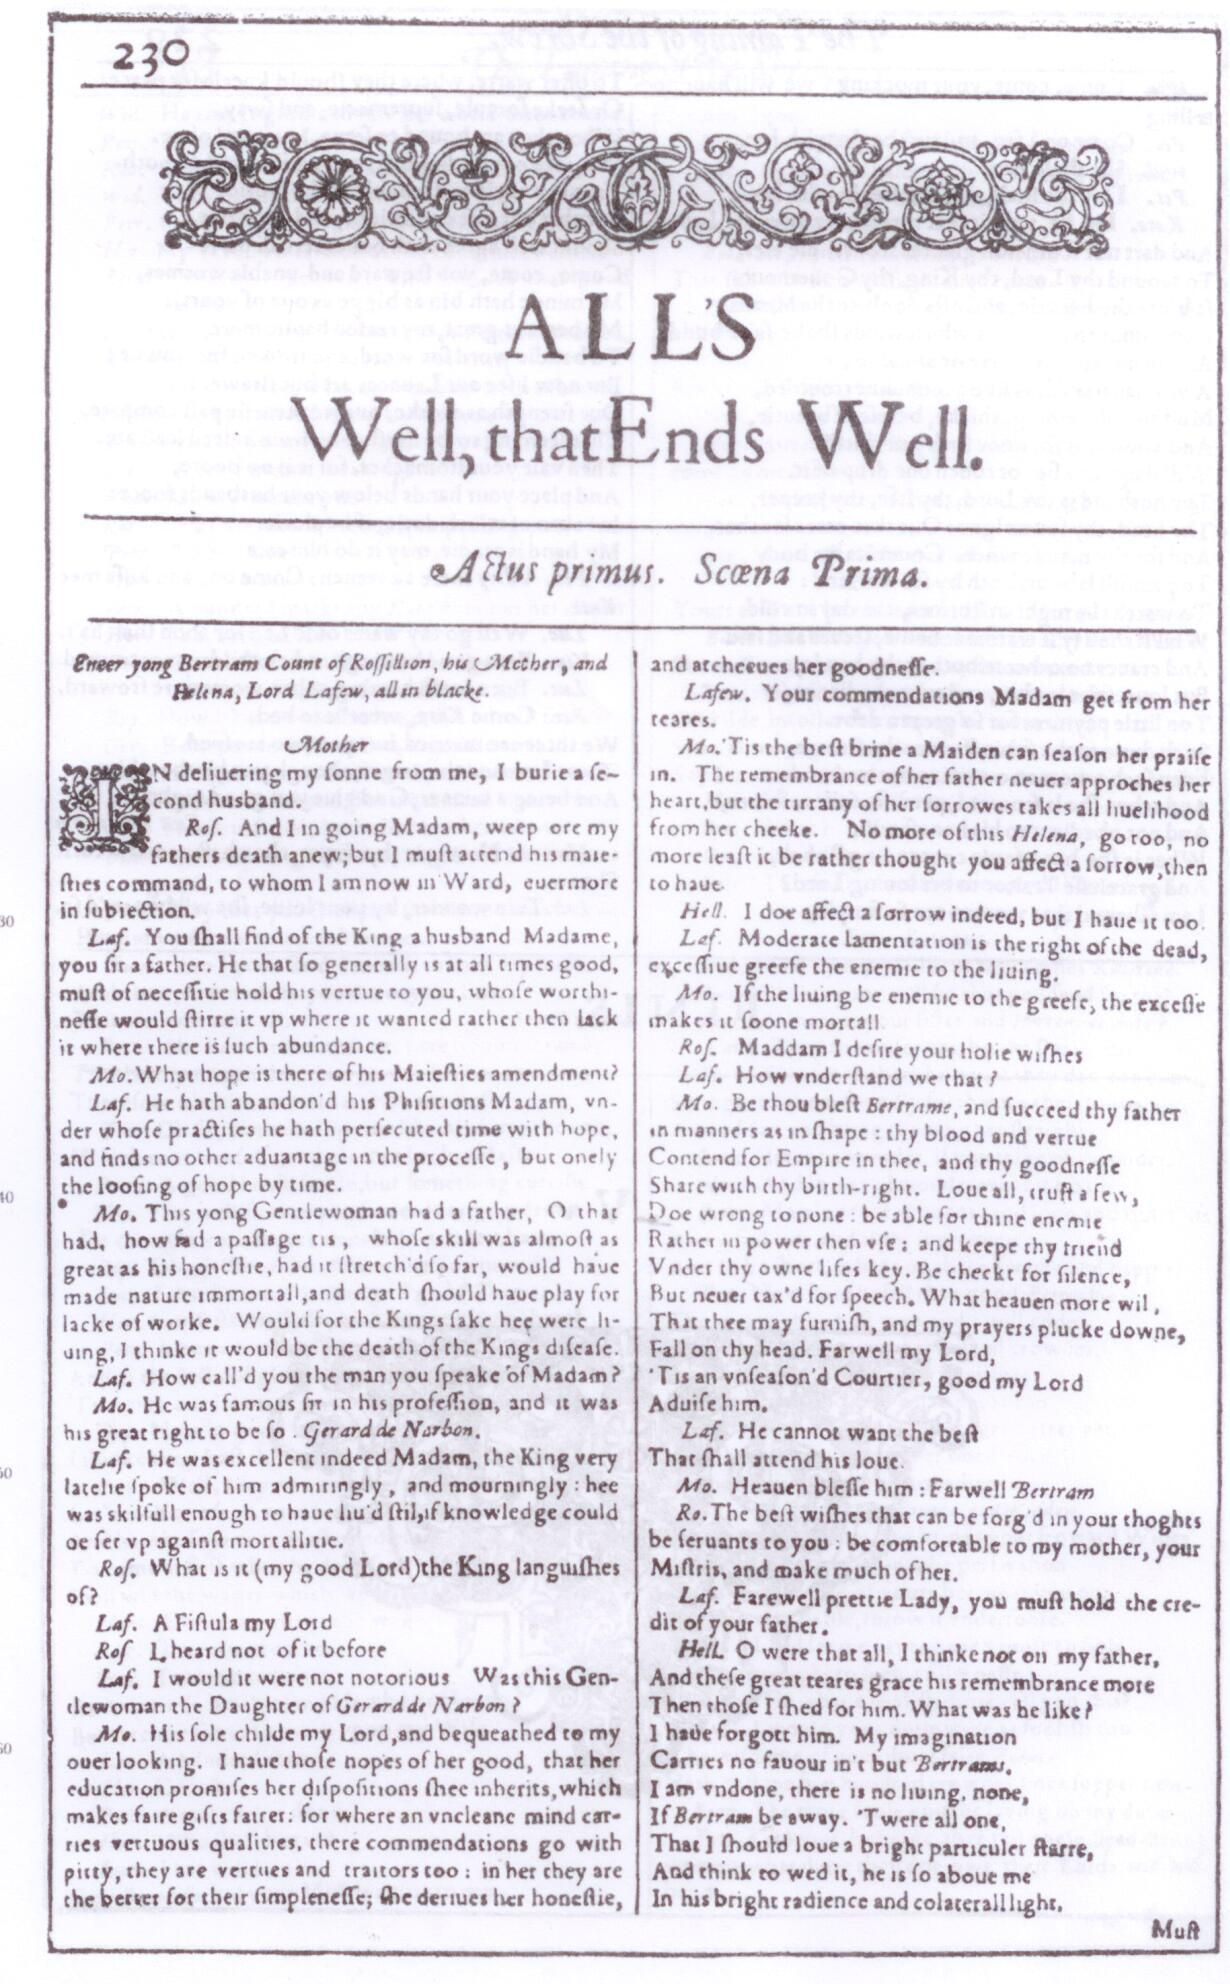 an analysis of alls well that ends well by william shakespeare The character of helena in all's well all's well that ends well by william shakespeare essay - in character analysis of helena in midsummer.